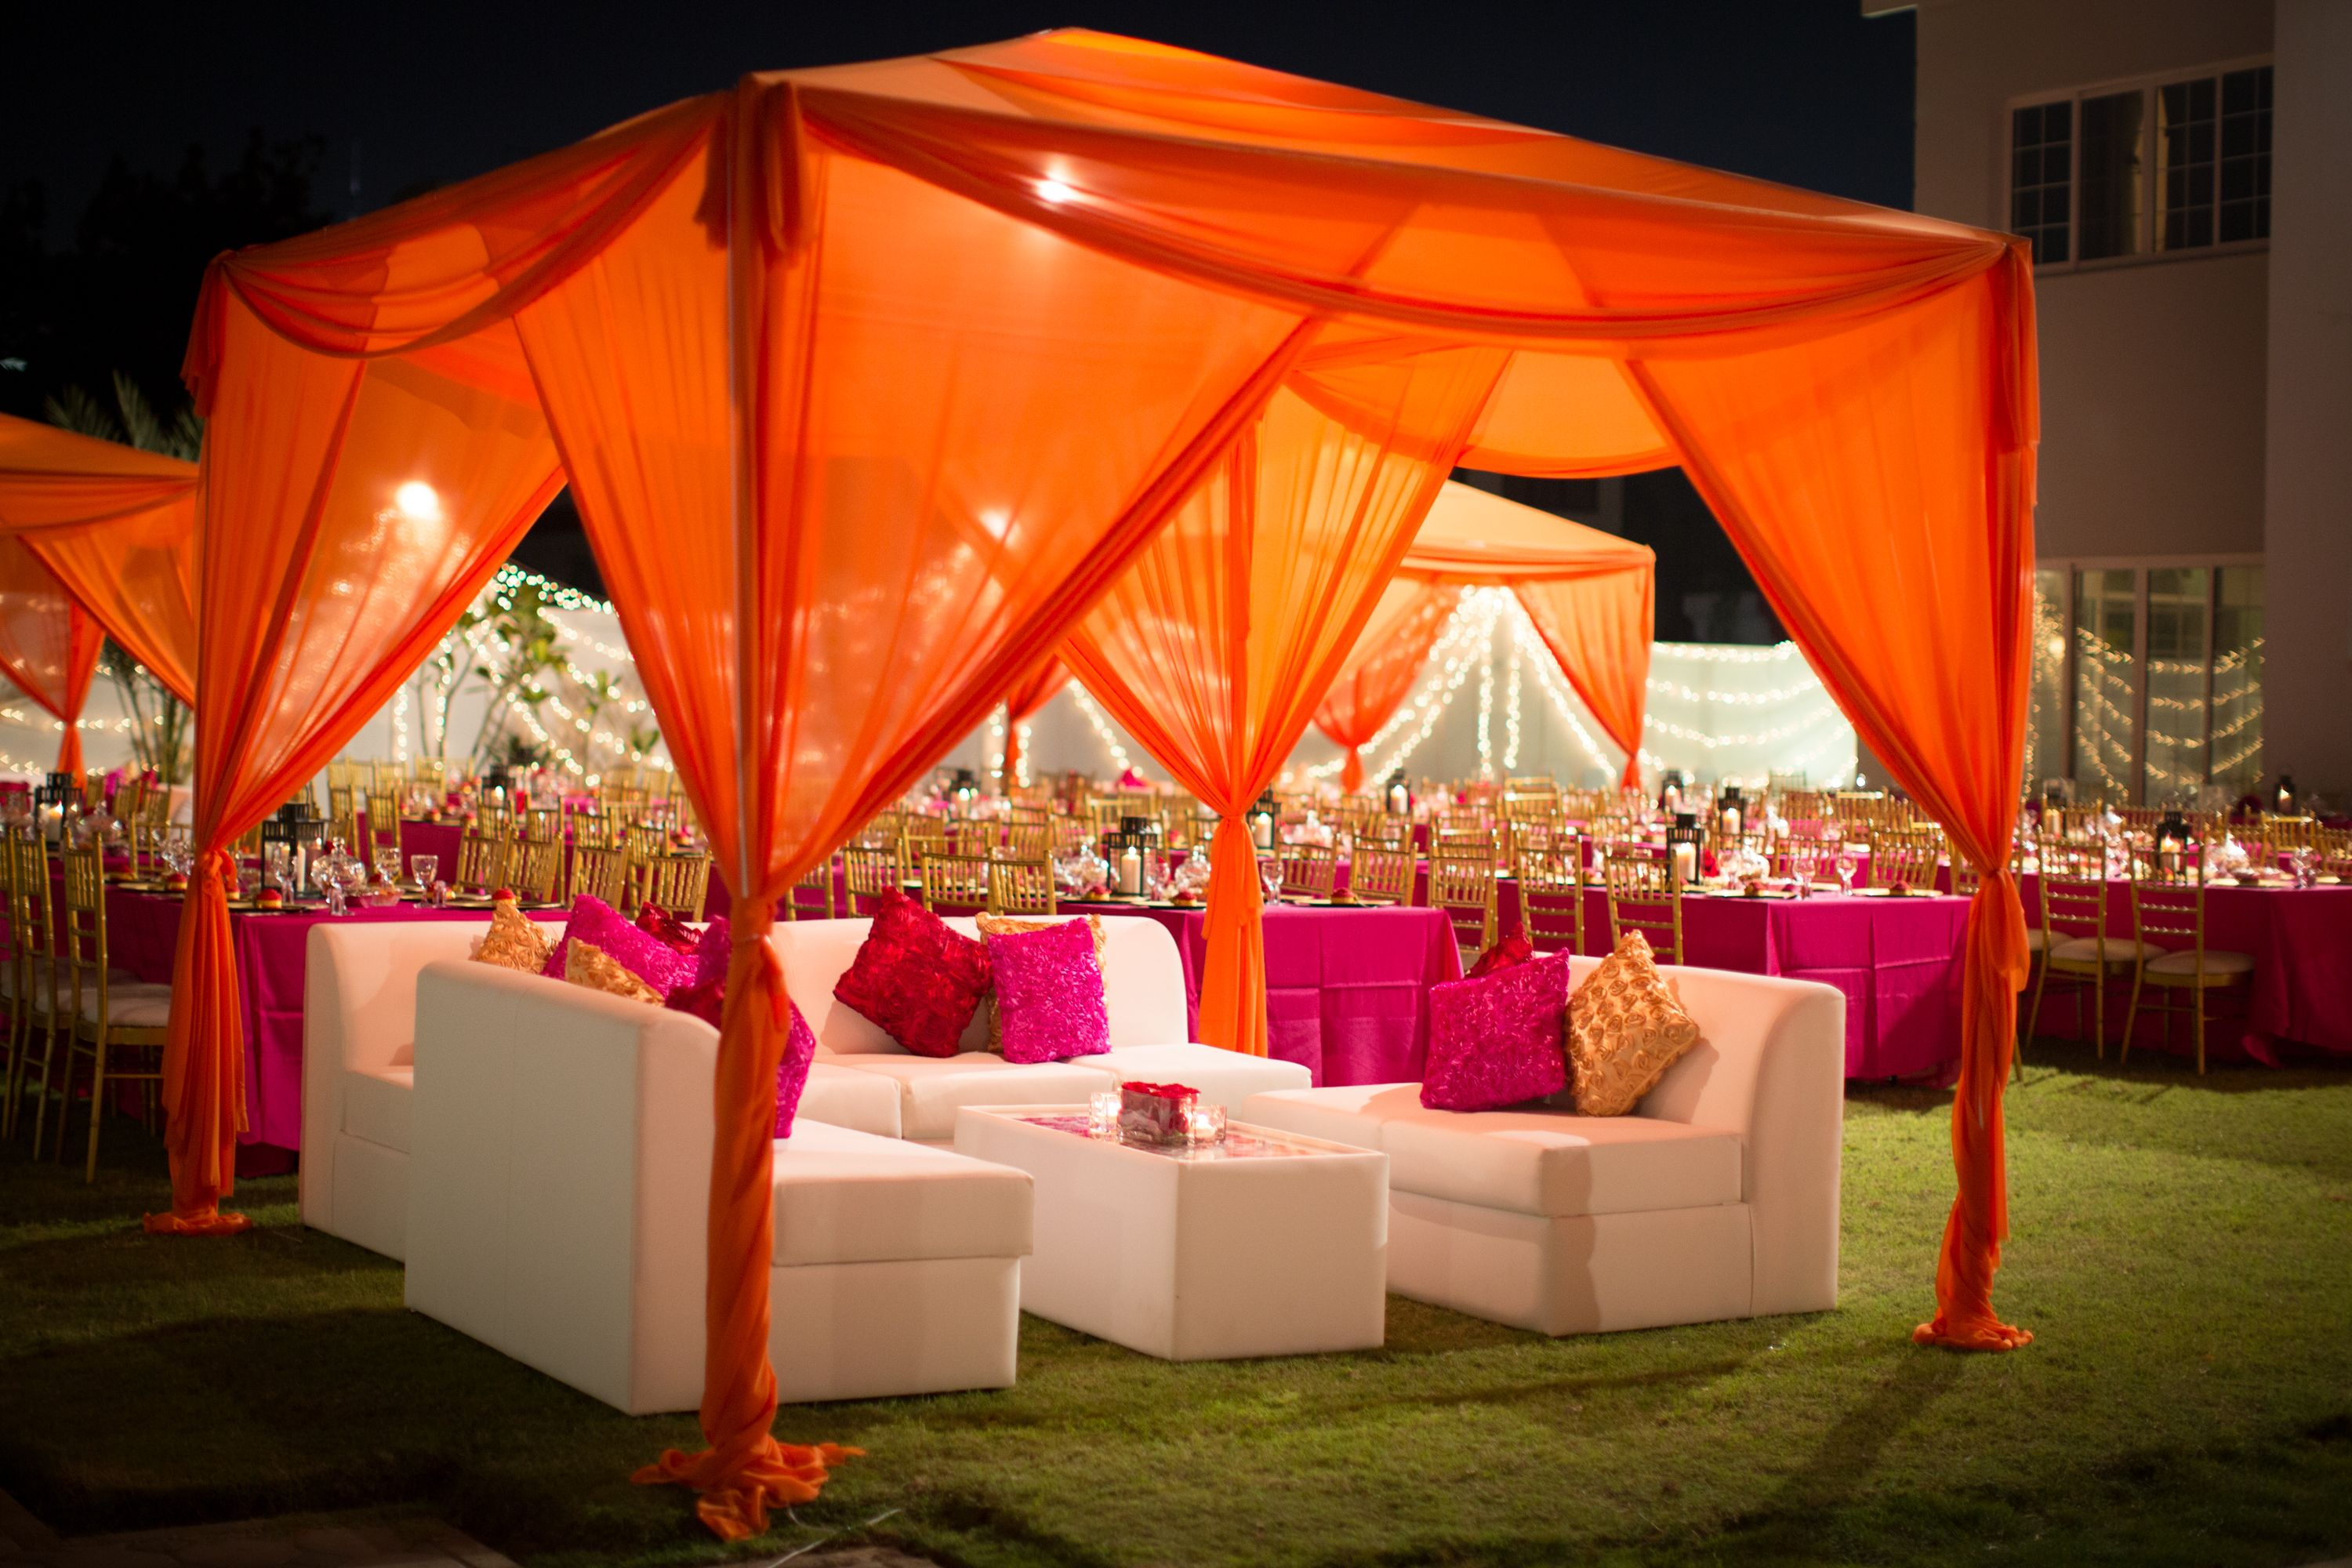 decoration - Orange Canopy Decorating